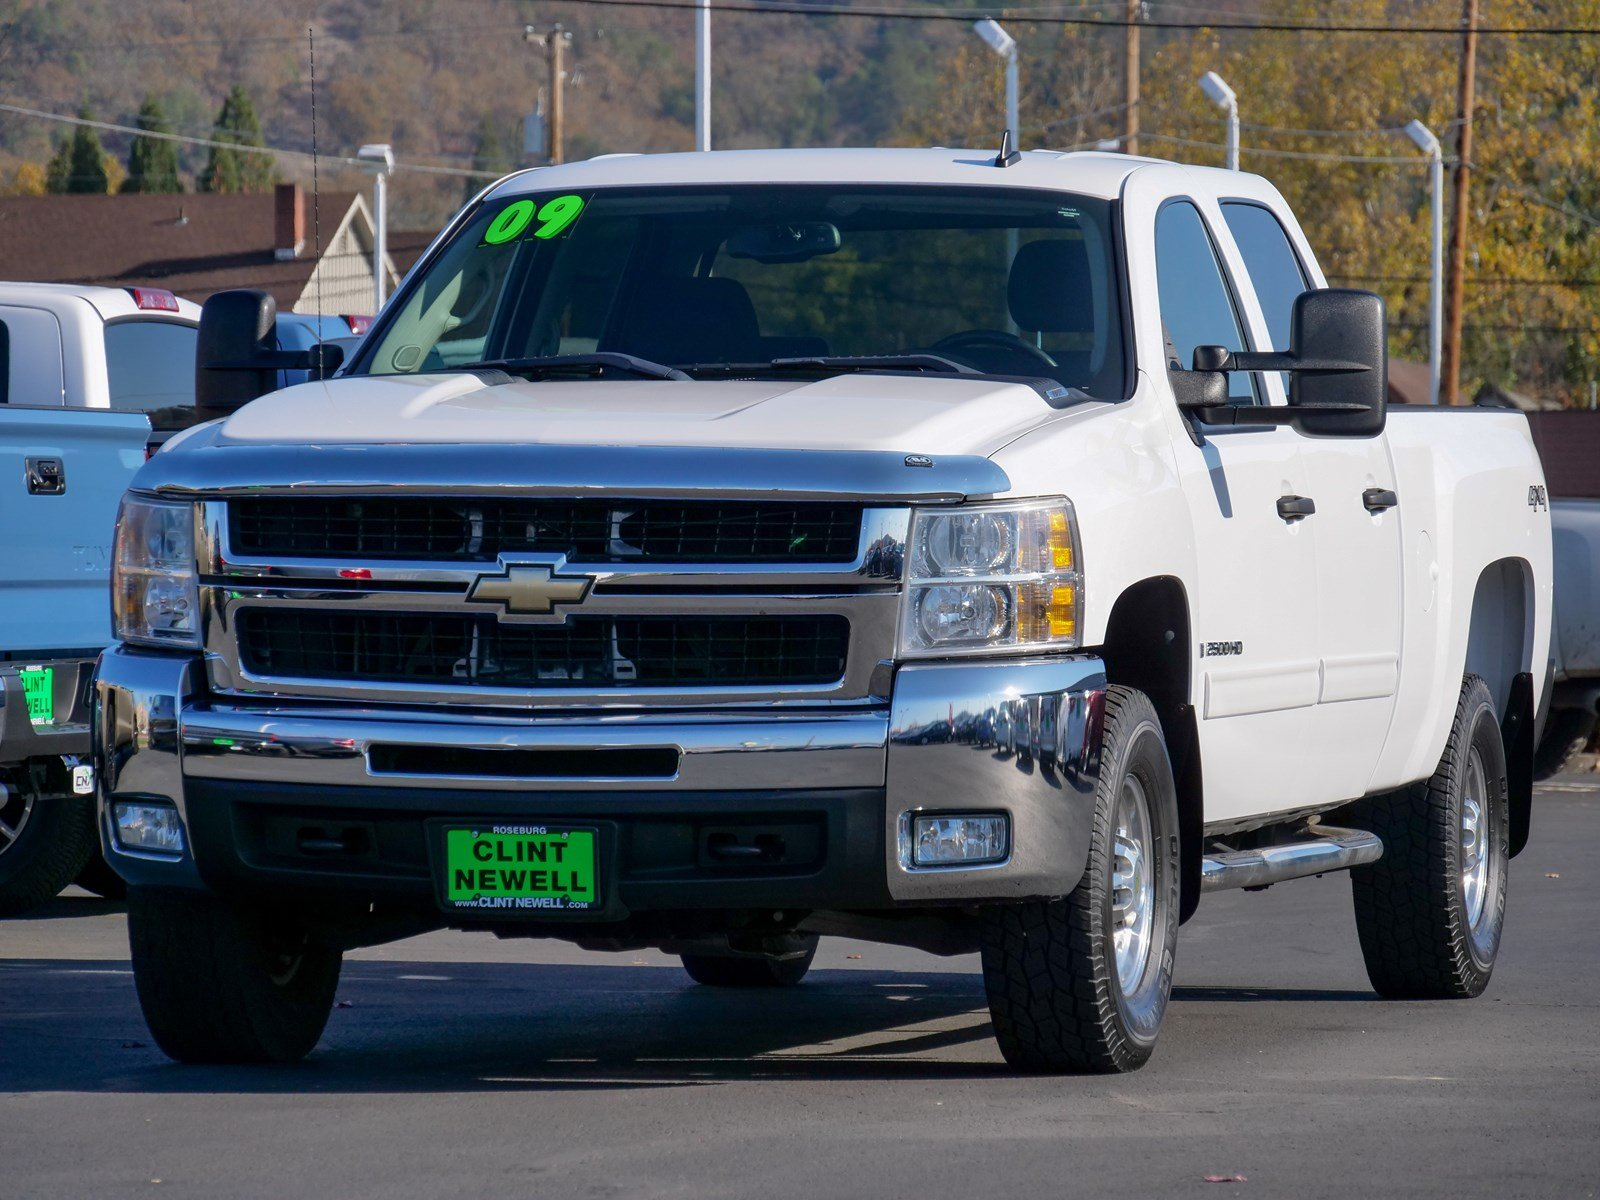 Pre Owned 2009 Chevrolet Silverado 2500HD LT Crew Cab Pickup in